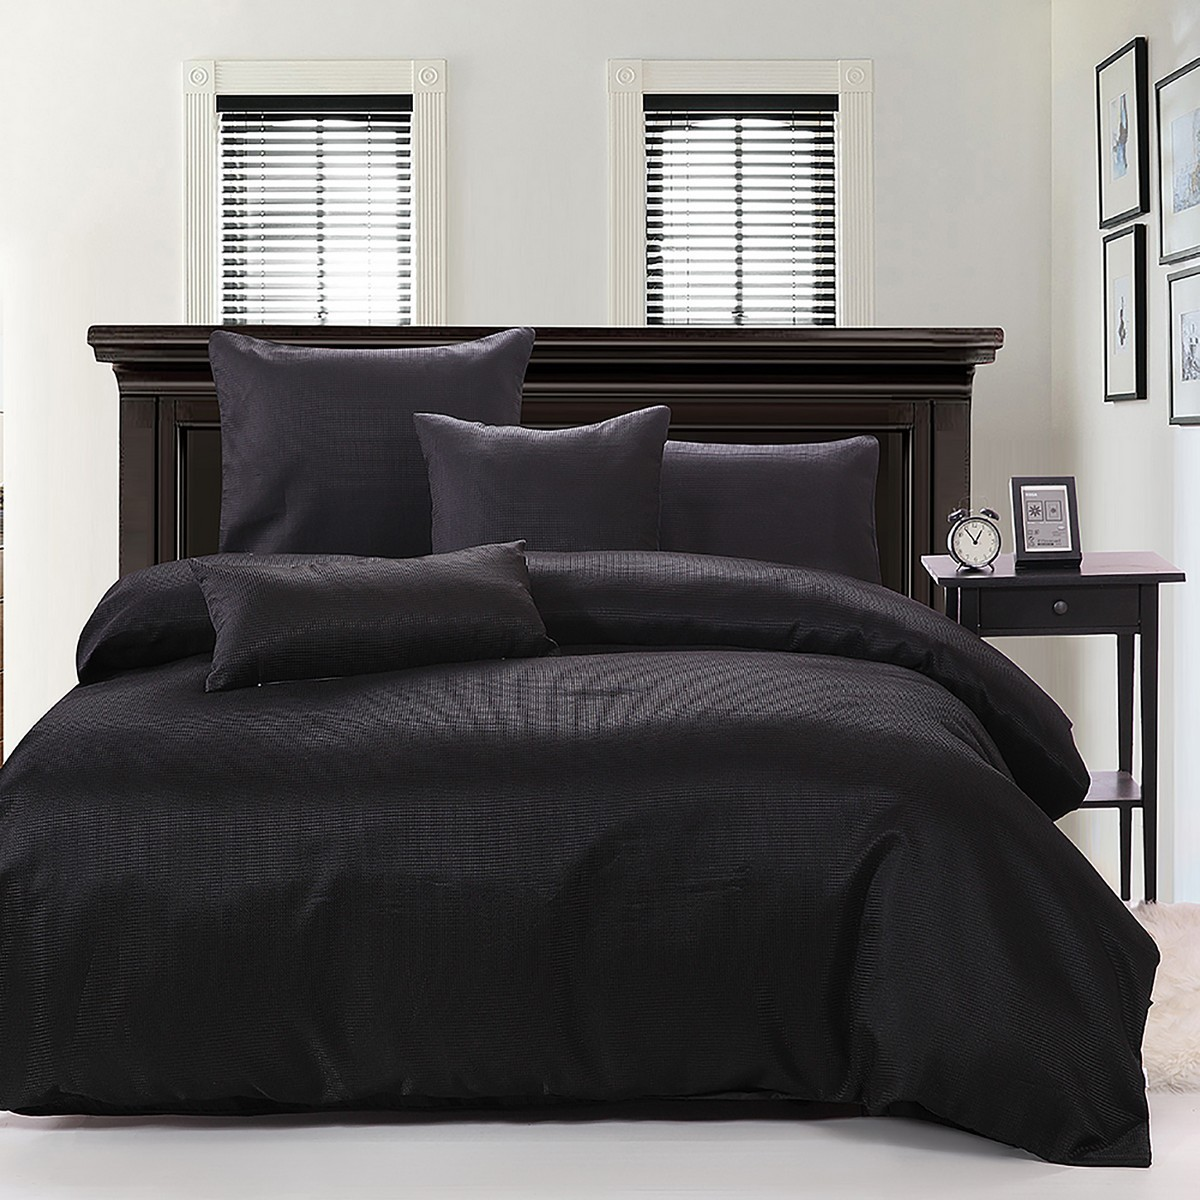 Ardor Boudoir Waffle Quilt Cover Set, Double, Black